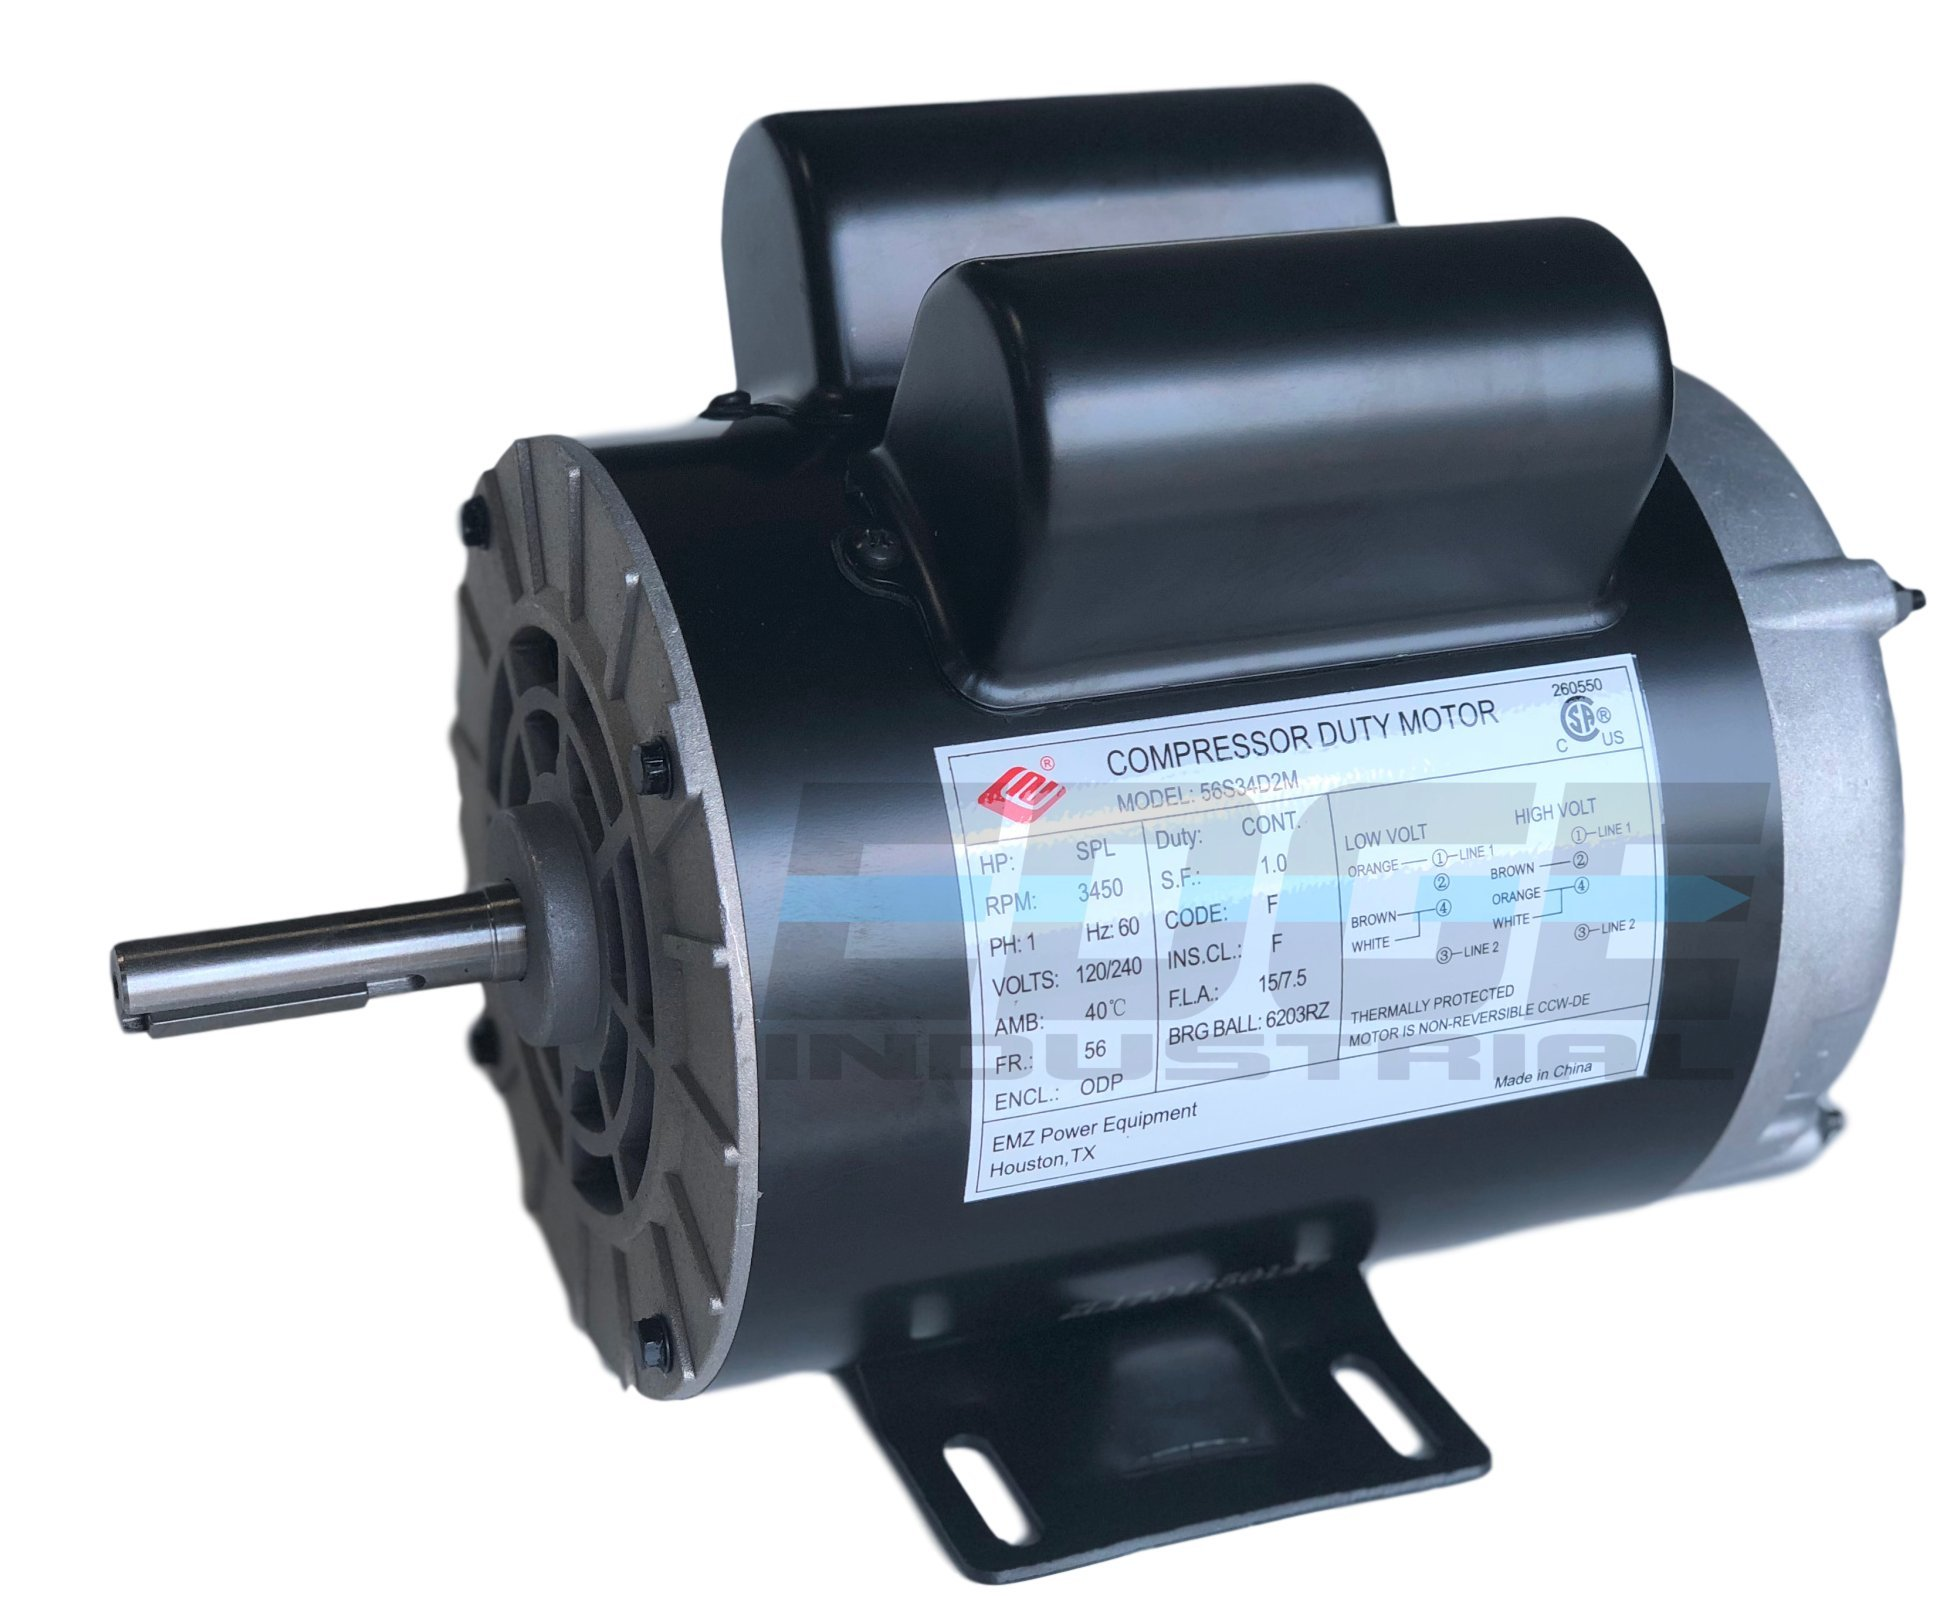 NEW 2 HP SPL Compressor Duty Electric Motor, 3450 RPM, 56 Frame, 5/8'' Shaft Diameter,120/240 VOLT by EDGE INDUSTRIAL EMZ (Image #1)